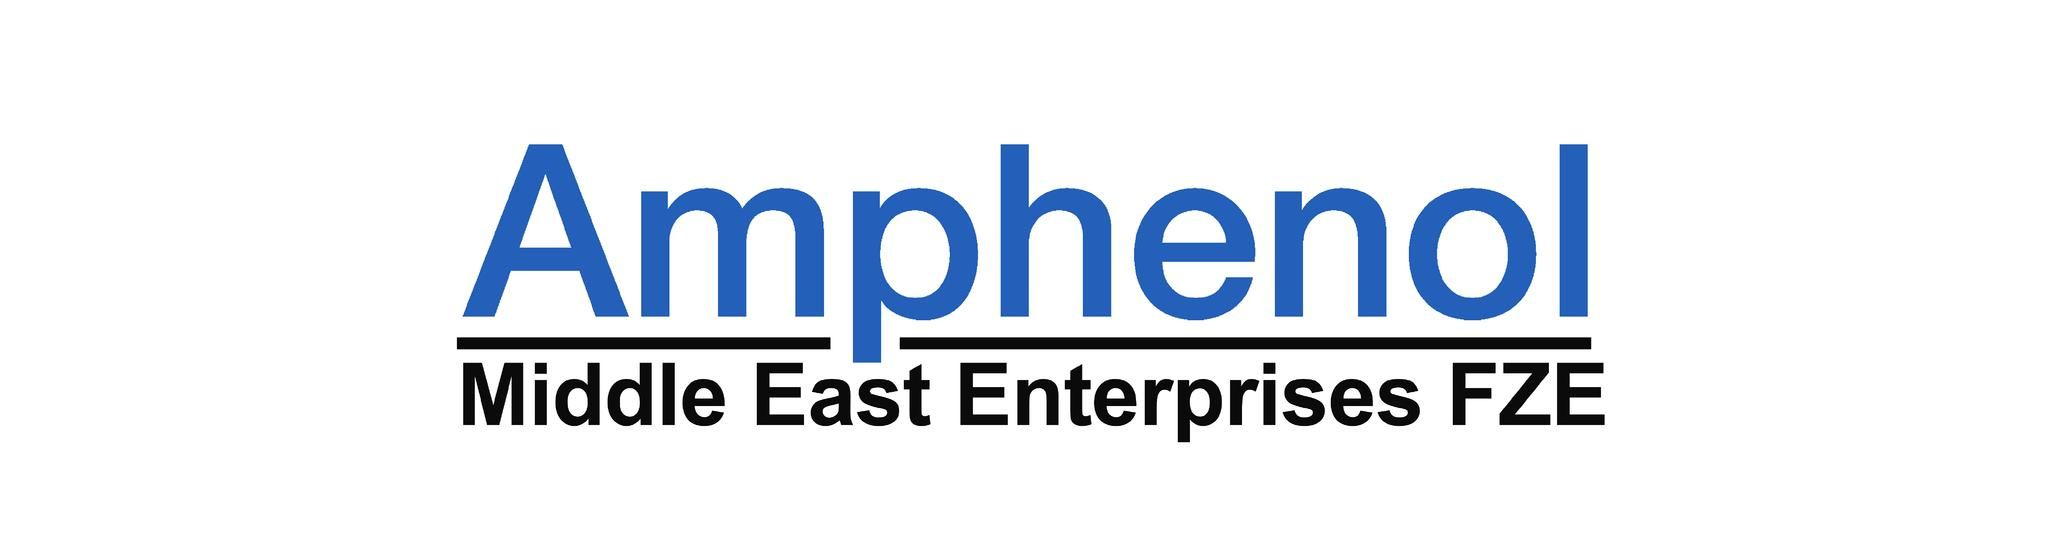 AMPHENOL MIDDLE EAST ENT. FZE